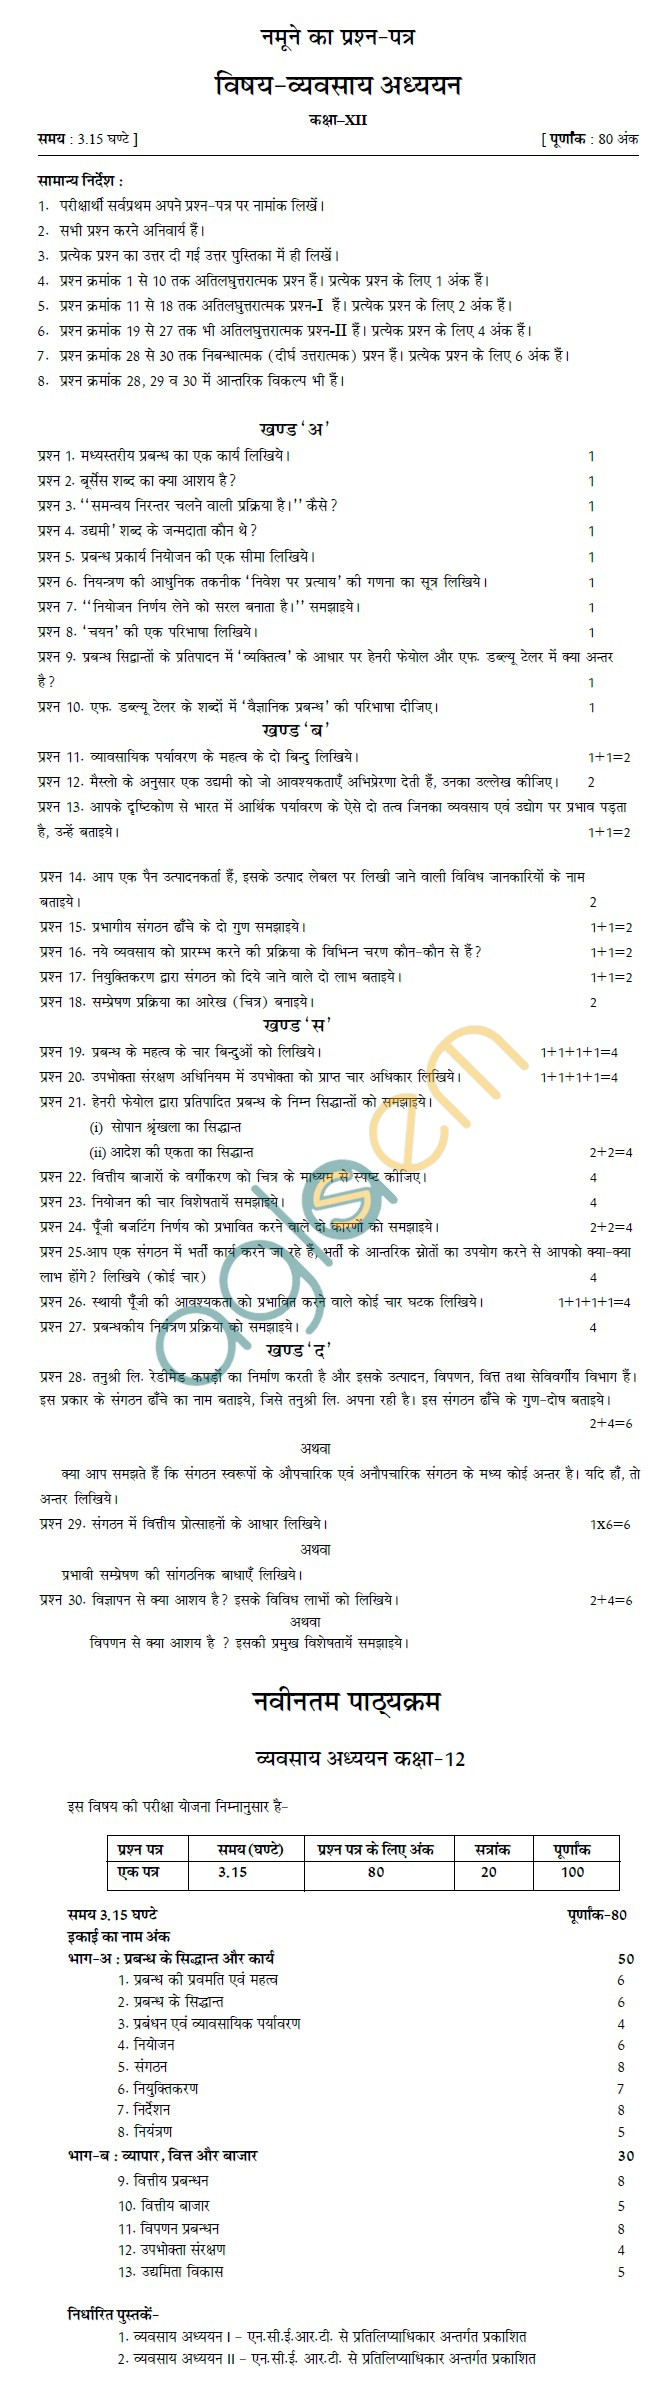 Rajasthan Board Class 12 Vyavasay Adhyayan Model Question Paper